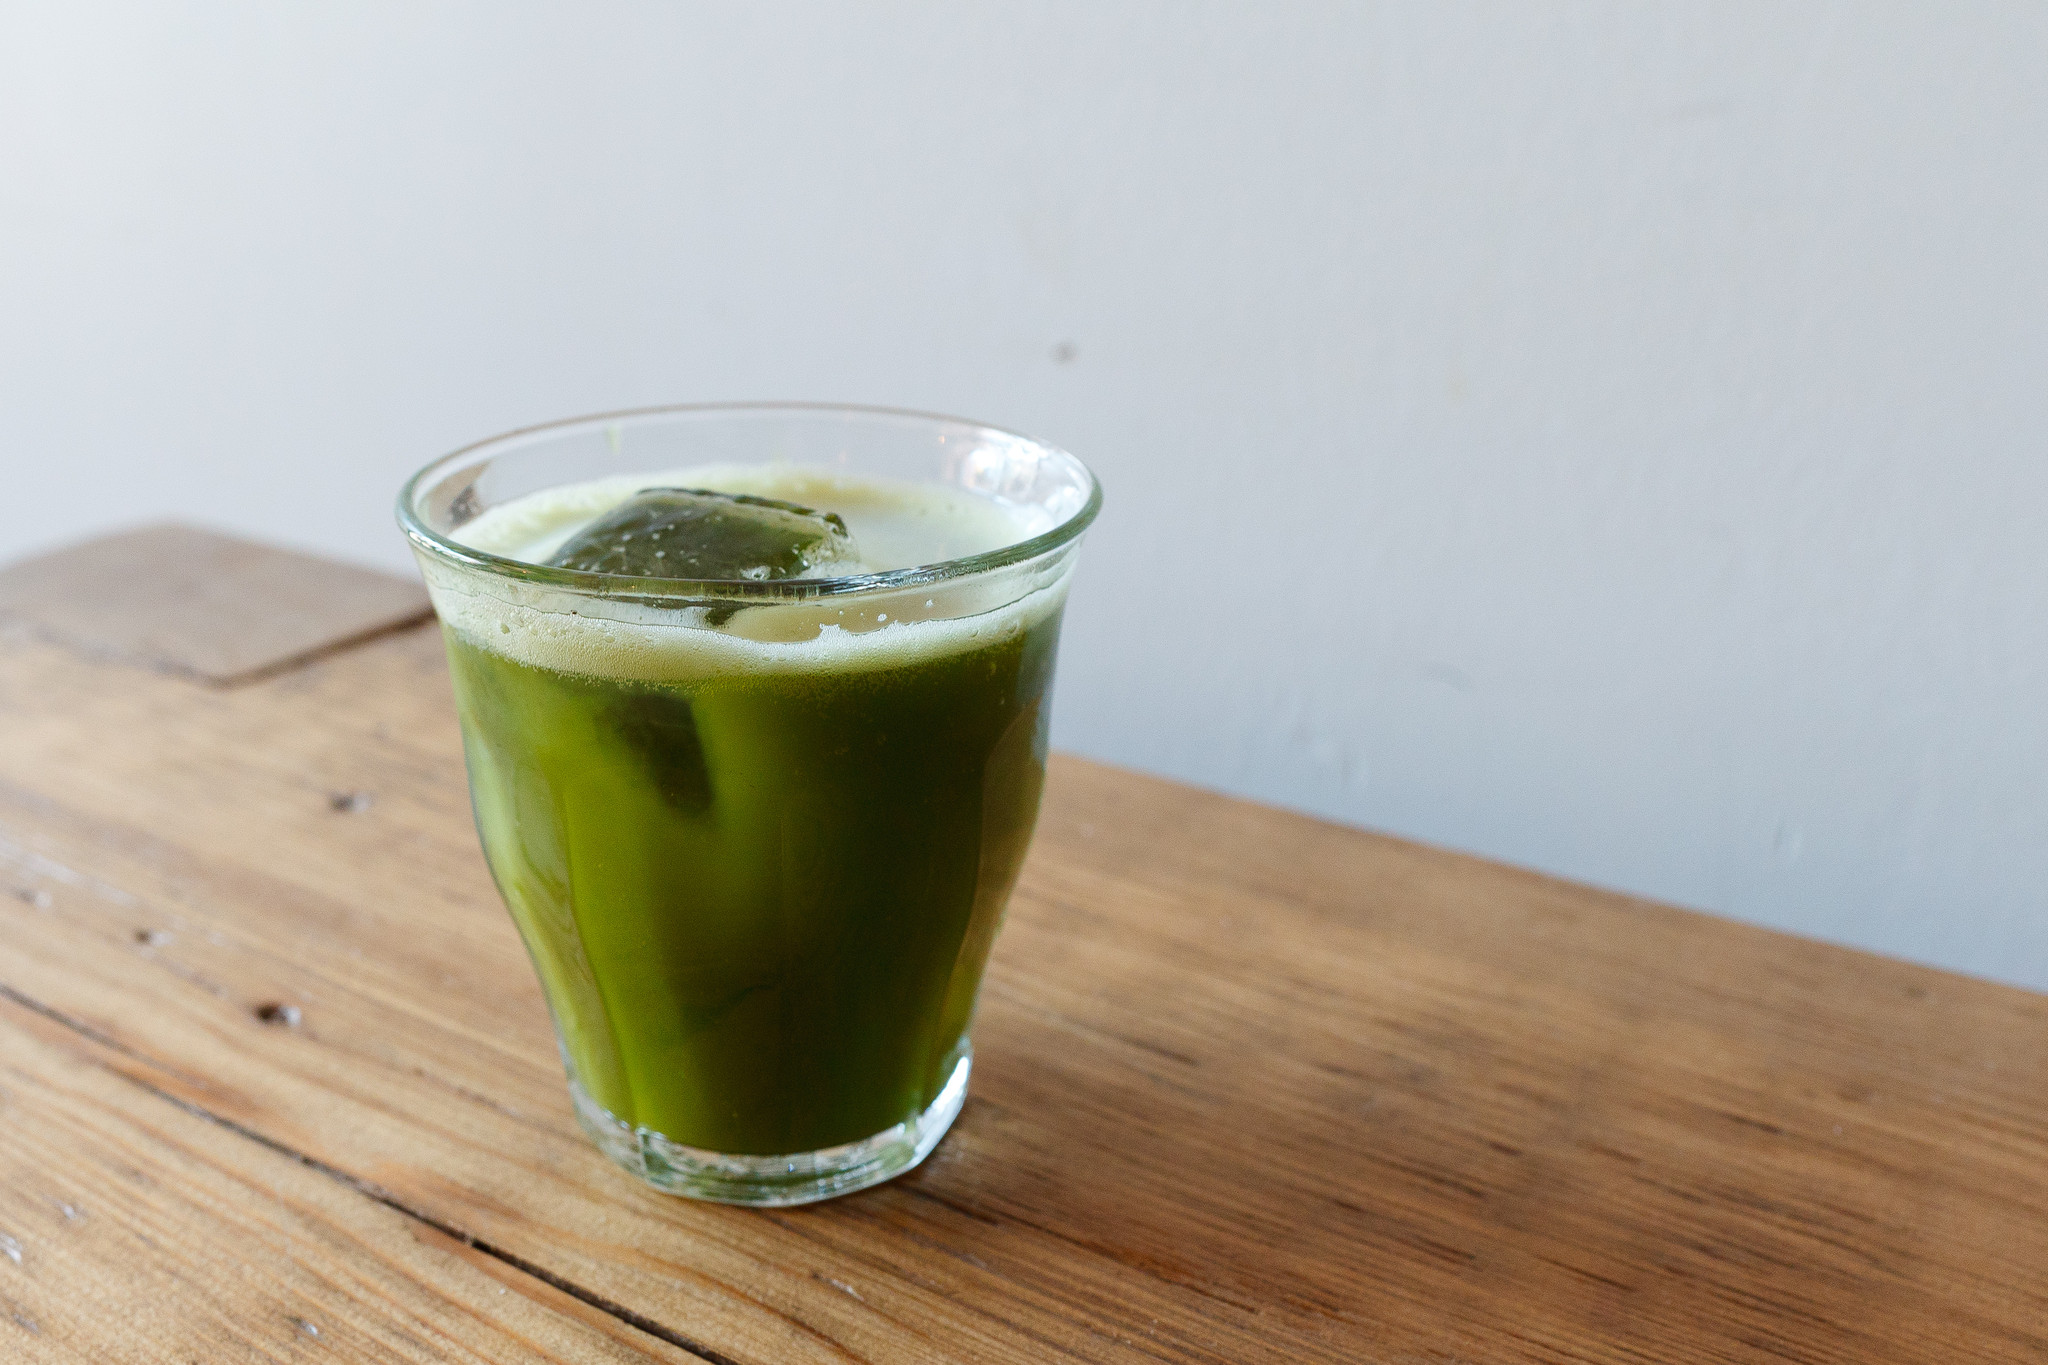 the matcha shot